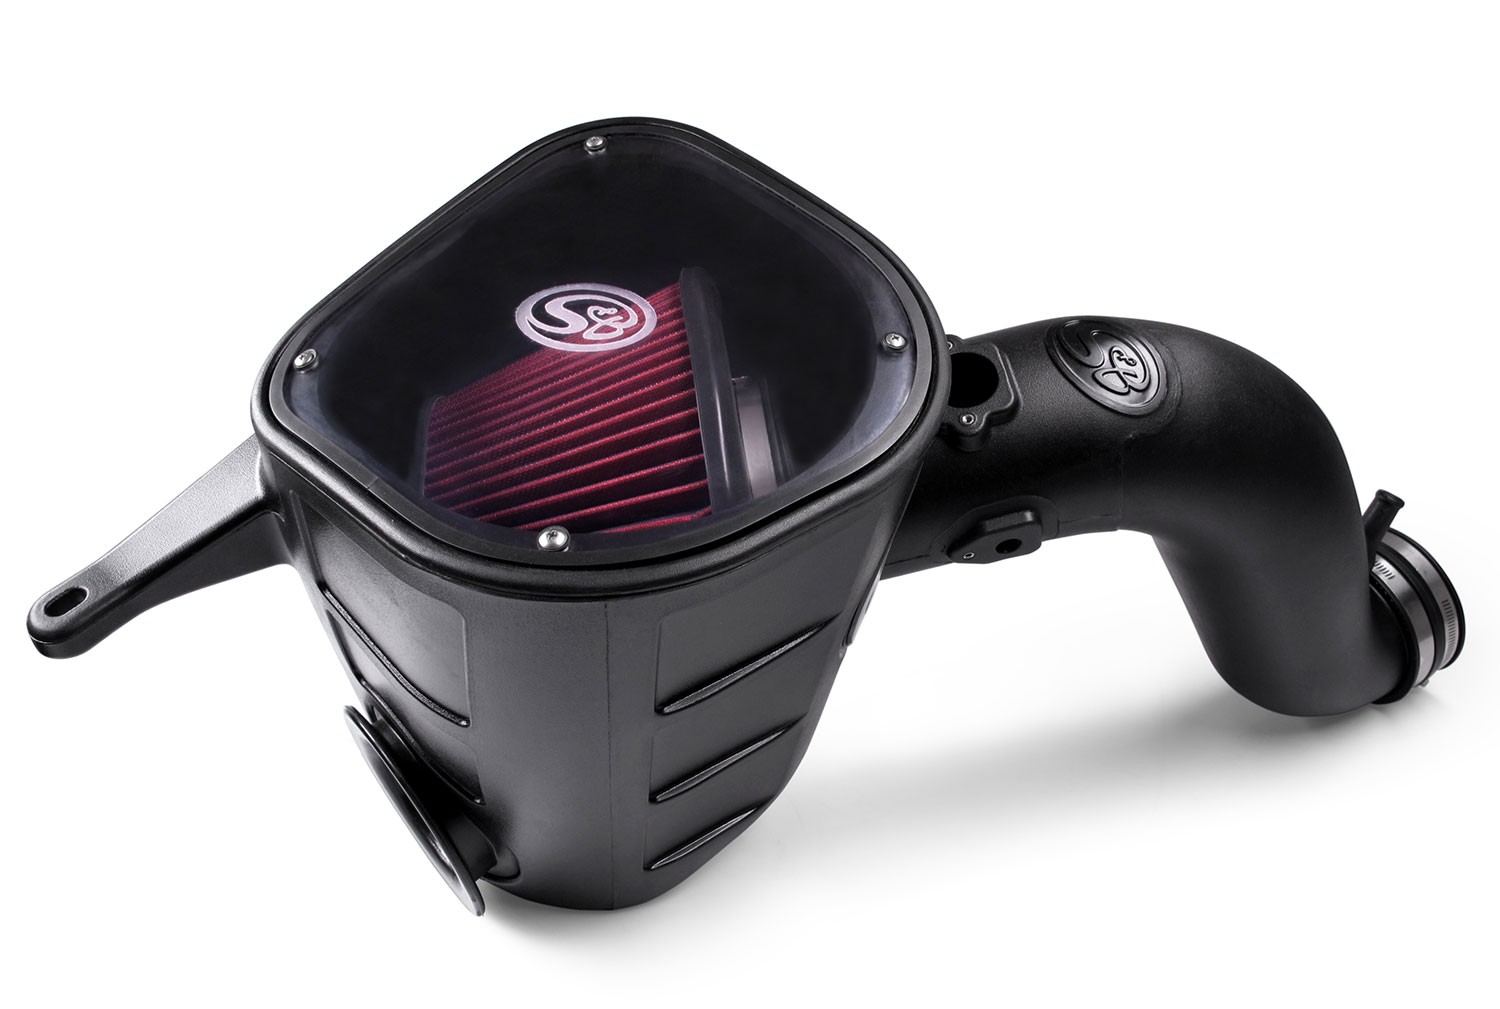 S&B Cold Air Intake for 2013-2017 Dodge Ram Cummins 6.7L